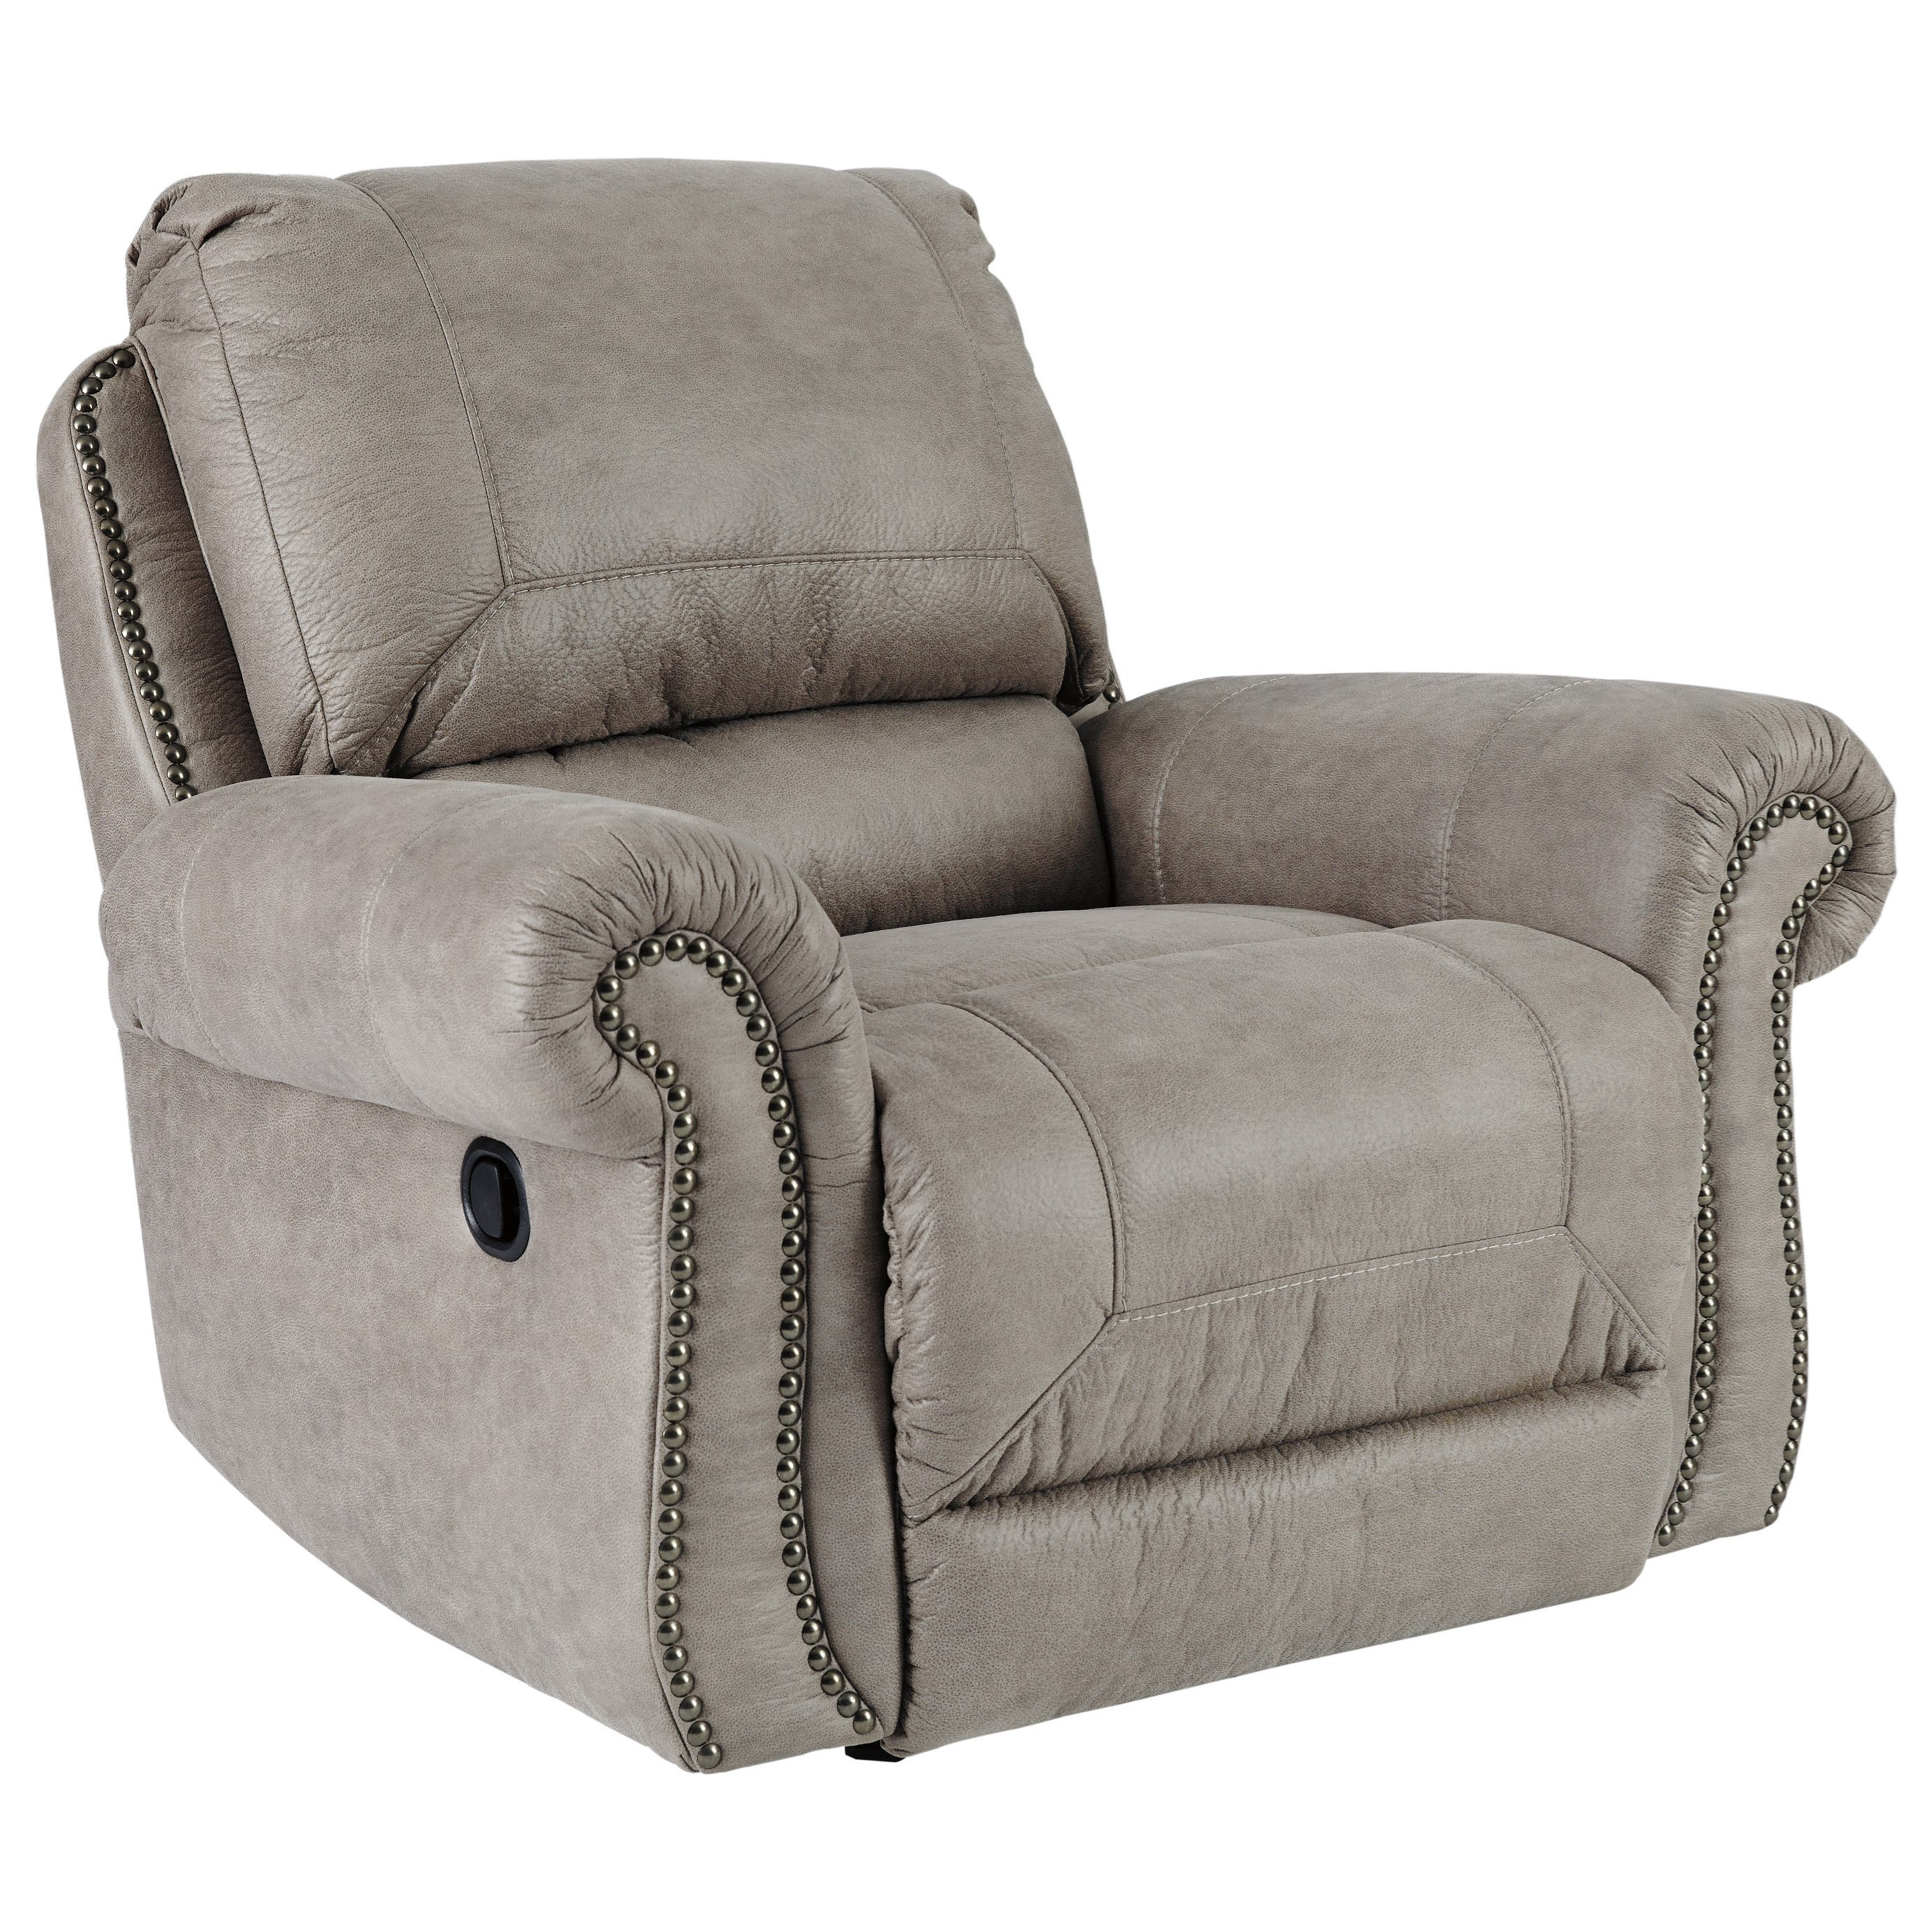 Ashley Furniture Recliners: Signature Design By Ashley Olsberg Rocker Recliner With